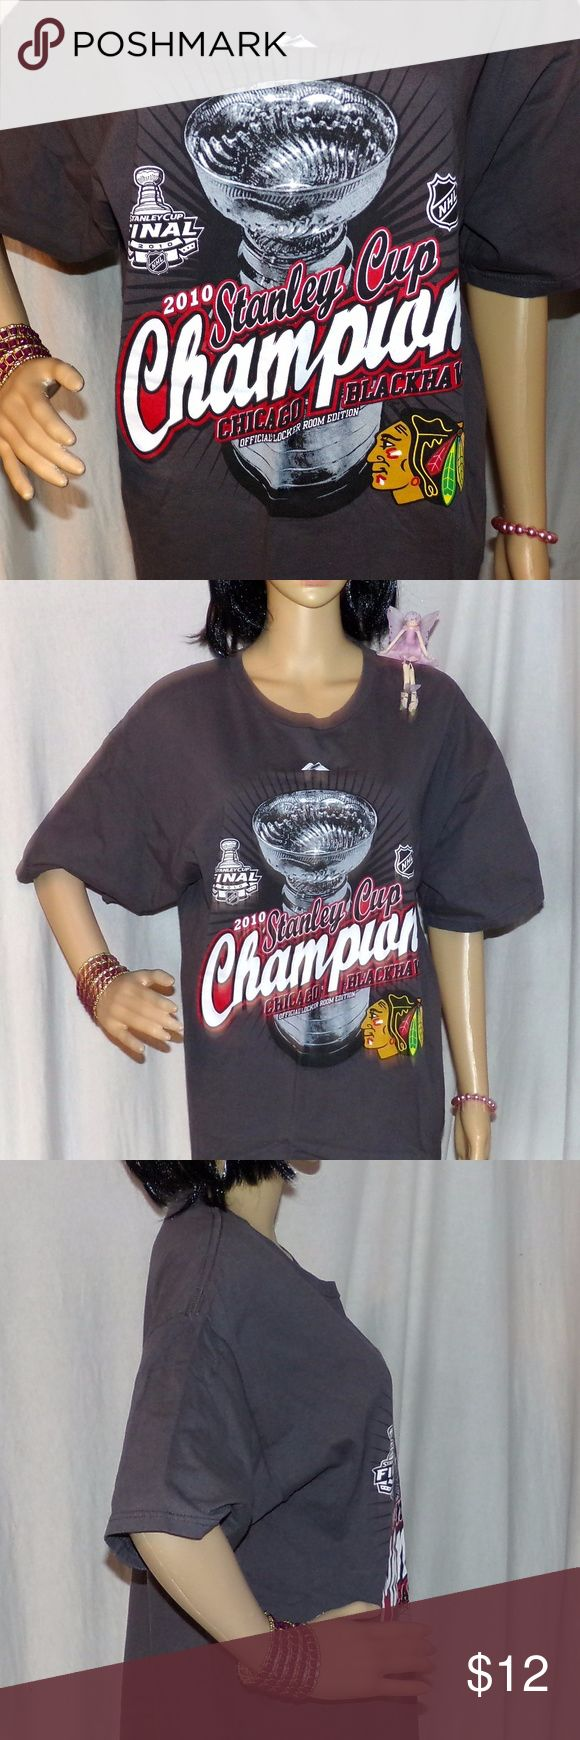 Chicago Blackhawks T Shirt Stanley Cup Champions Chicago Blackhawks T-Shirt Stanley Cup Champions 2010 NHL T-Shirt Size L  LOW & Fast Shipping. The t-shirt is kind of a gunmetal color and is in excellent condition it is Made by Alstyle and it is 18 years old! 100 percent Cotton. 4 Reference, our Supermodel Denise's Measurements r 32-24-33. BUNDLE 2 or more items & get a BIGGER DISCOUNT or make an OFFER Fairies Love Offers :) Alstyle Tops Tees - Short Sleeve